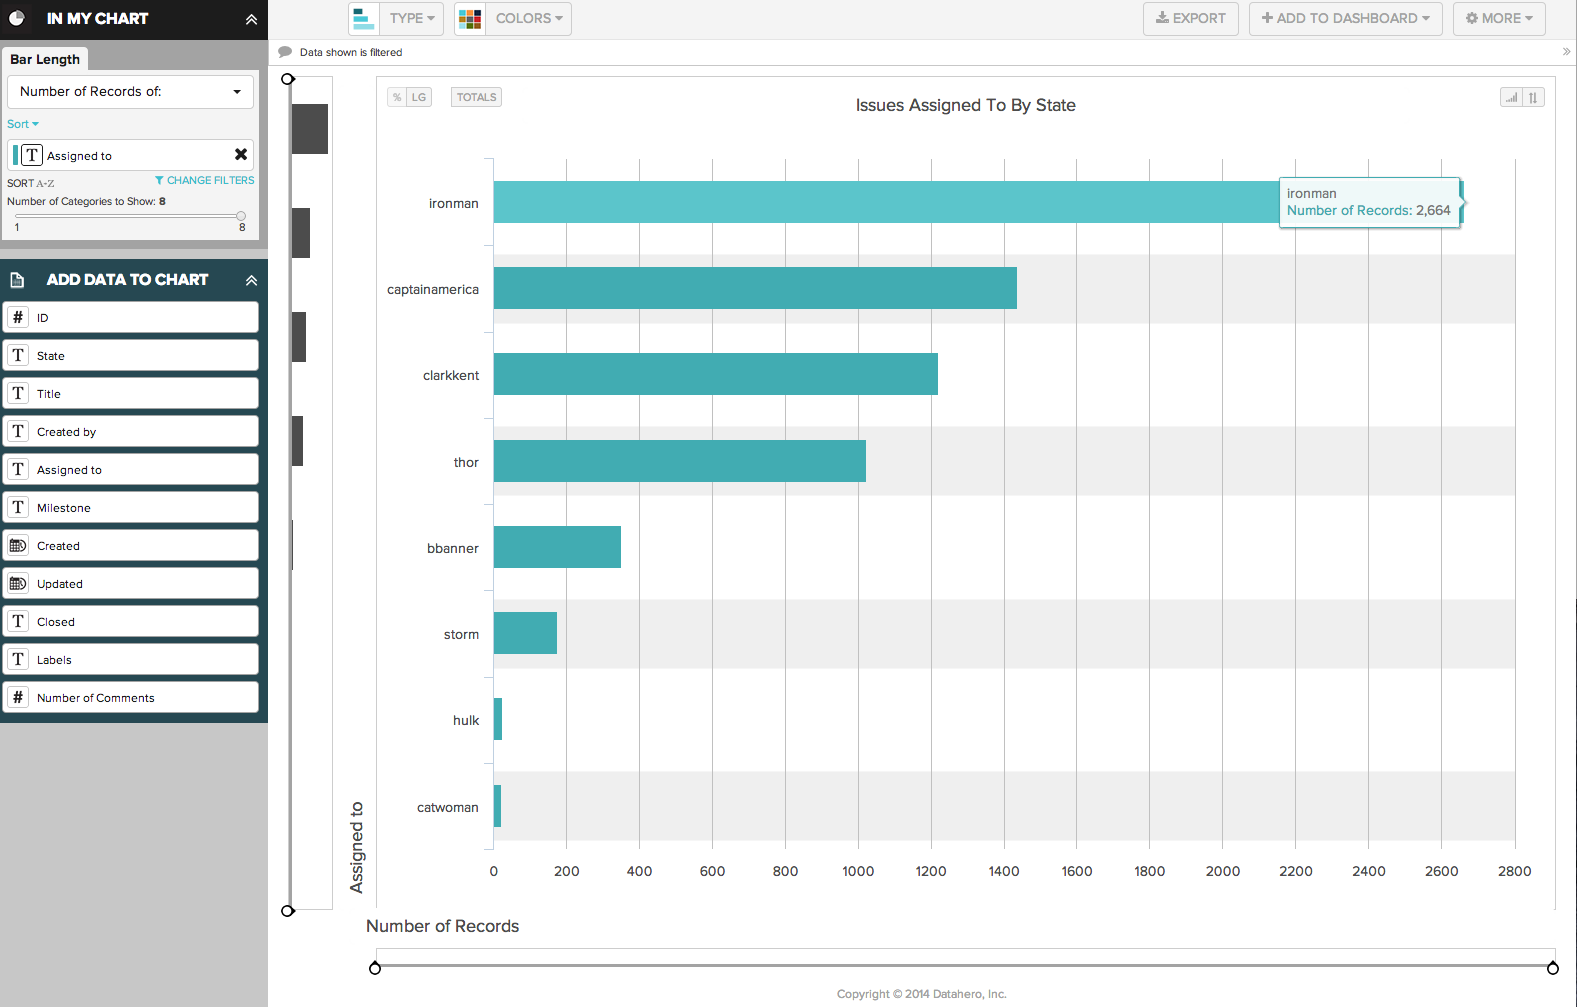 Hovering over charts in DataHero allows users to see exact values